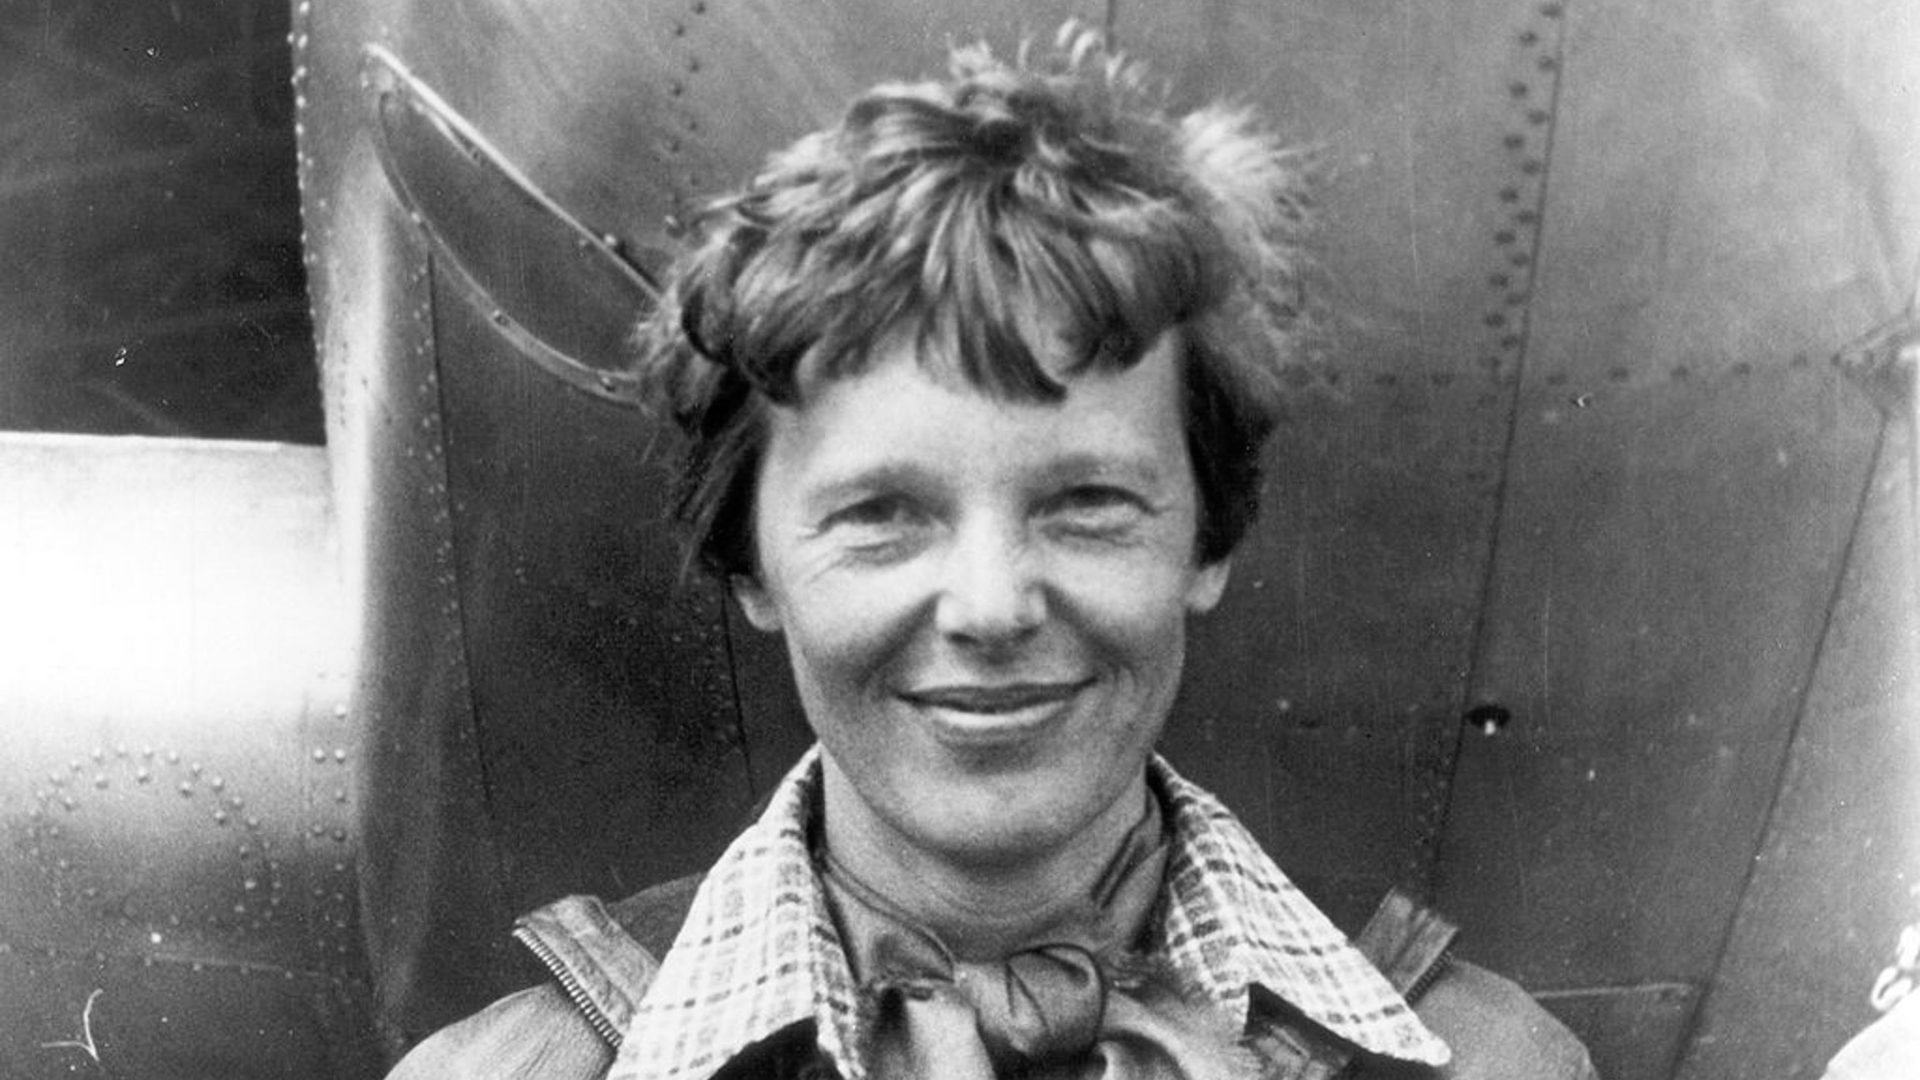 Amelia Earhart became the first woman to fly solo across the Atlantic in the early 1900s.